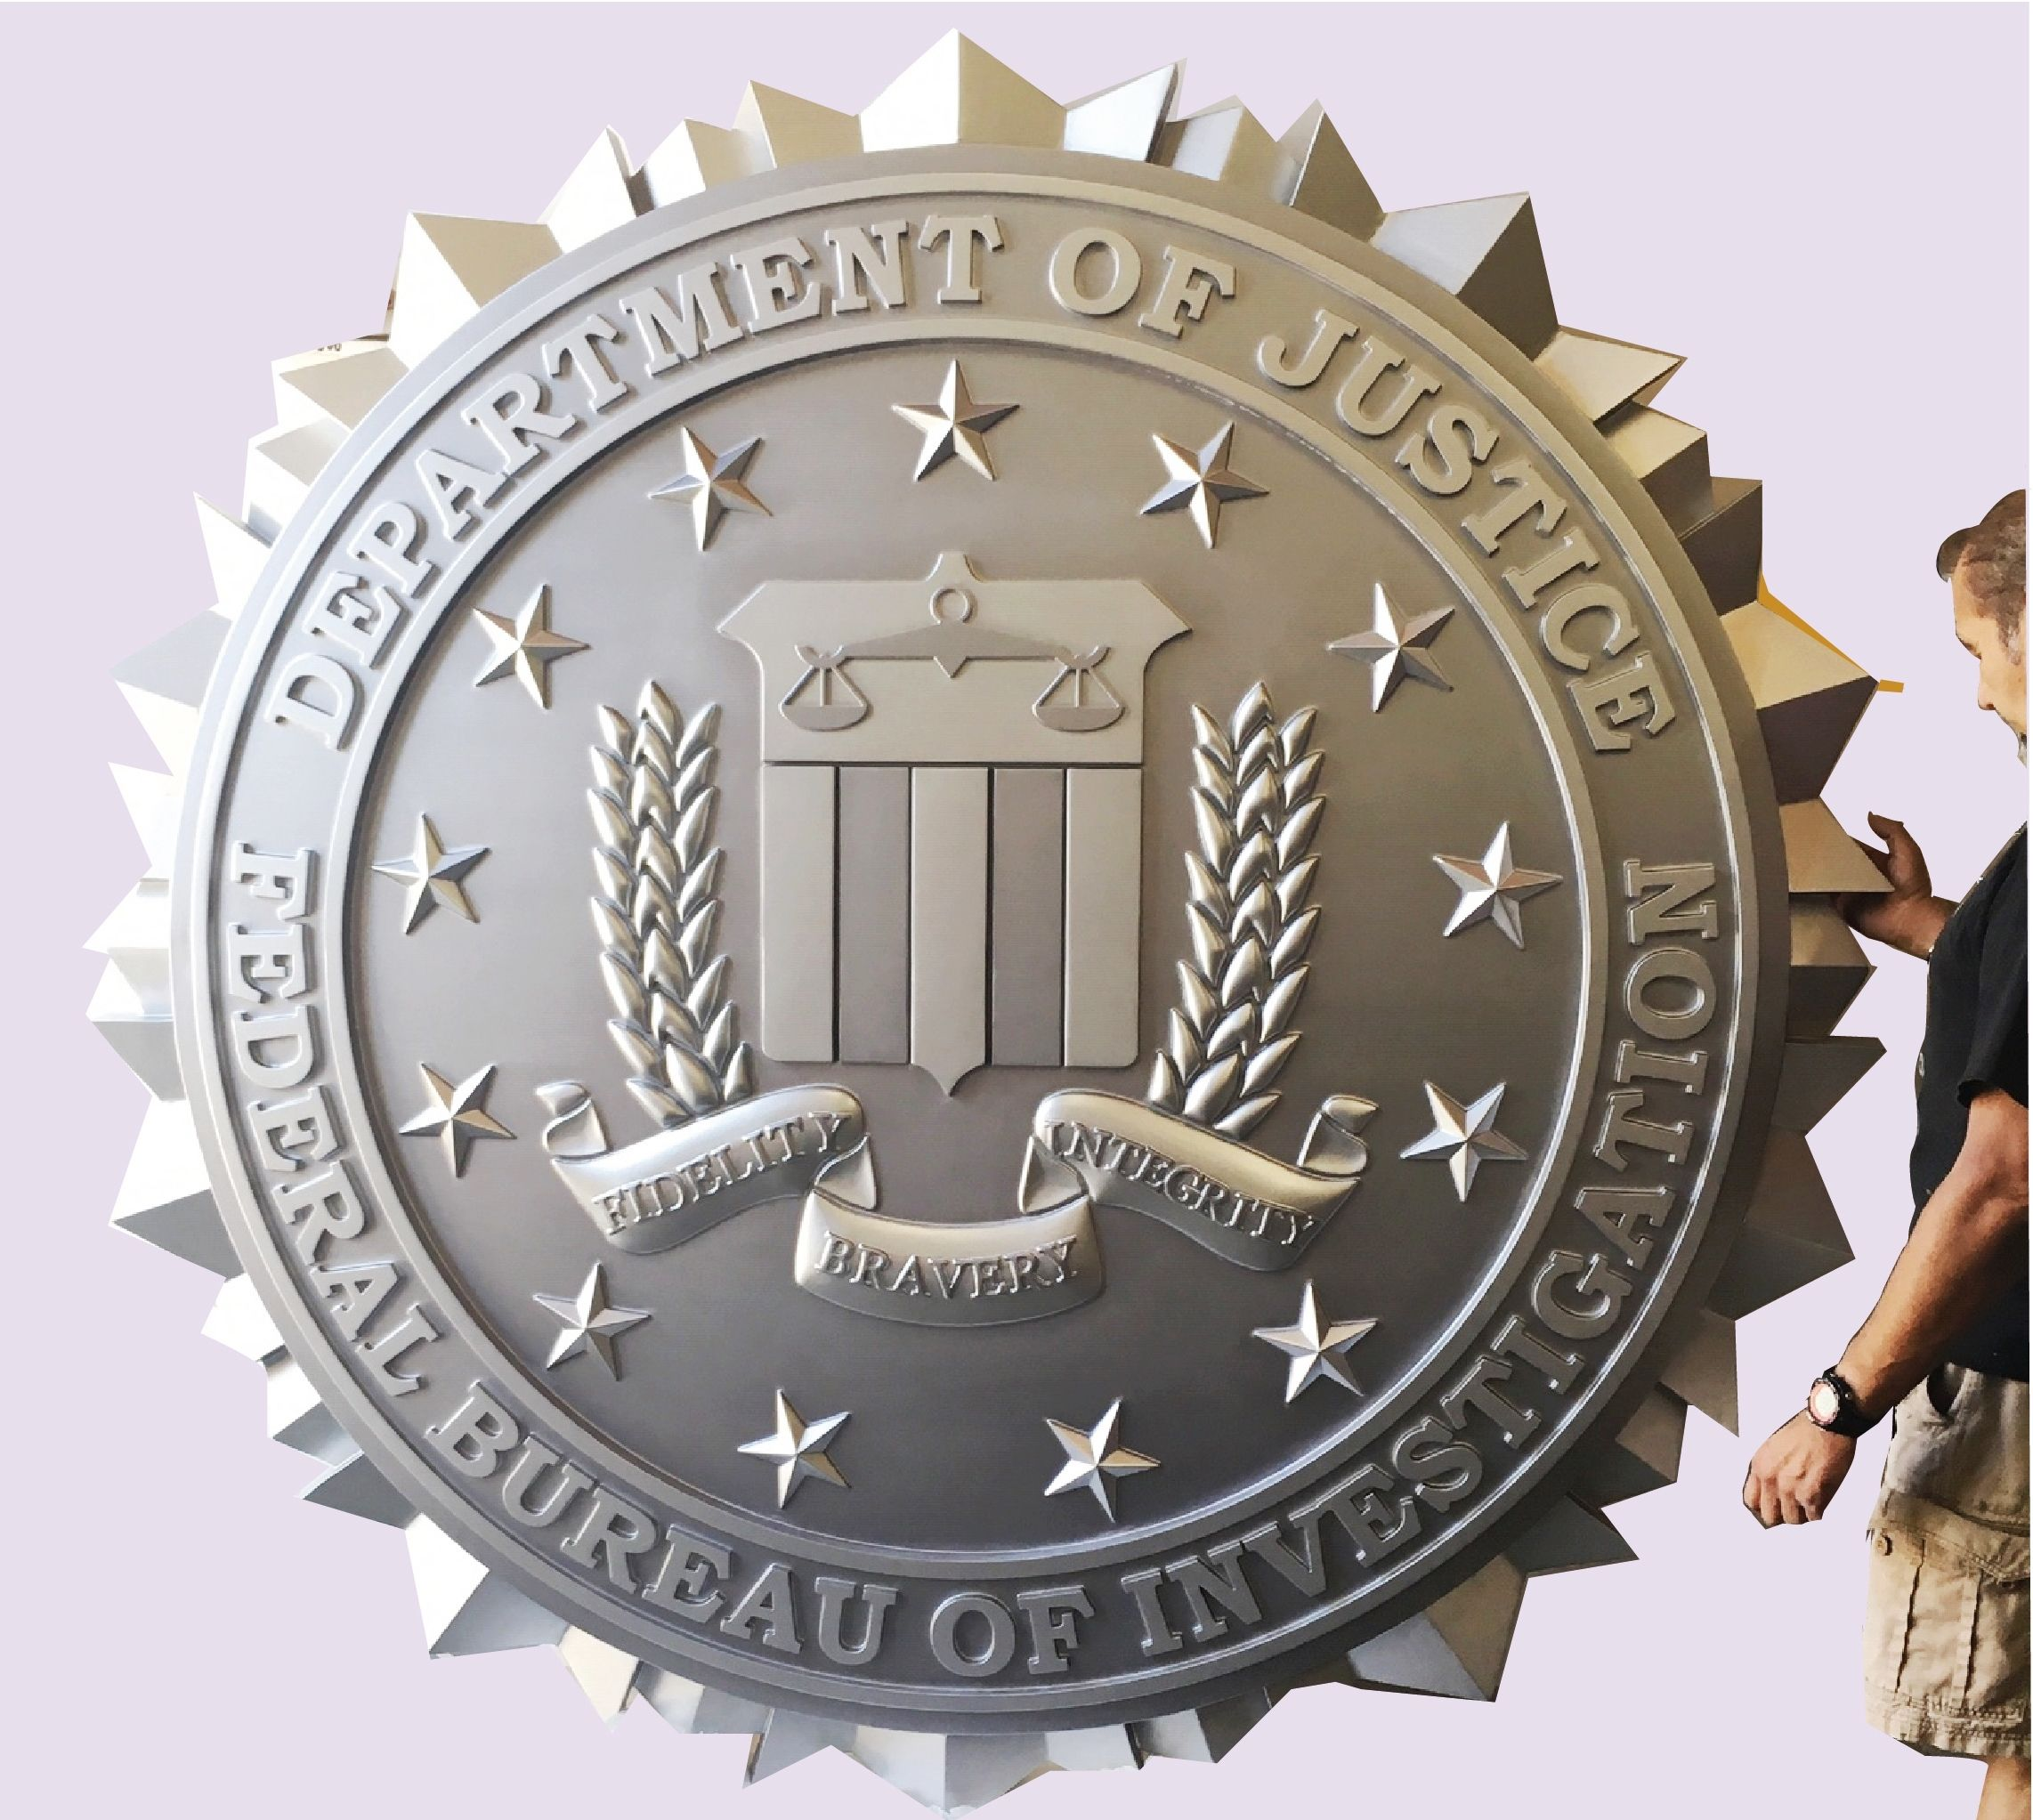 AP-2408 - Large Carved Plaque of the Seal of the Federal Bureau of Investigation (FBI), 3-D Bas-Relief, Metallic Silver Painted